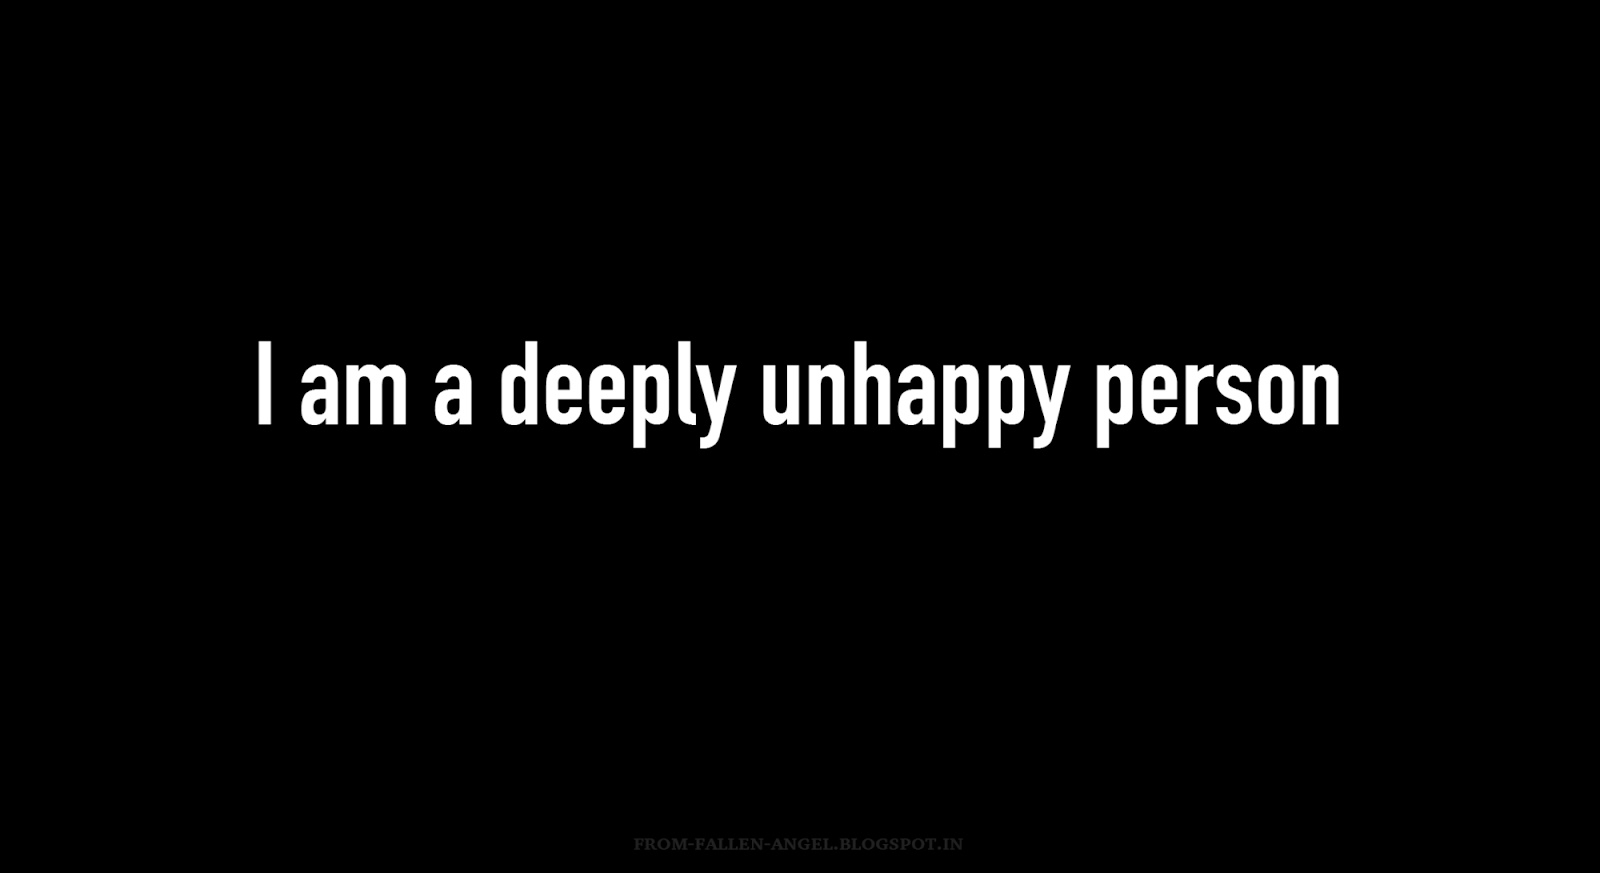 I am a deeply unhappy person